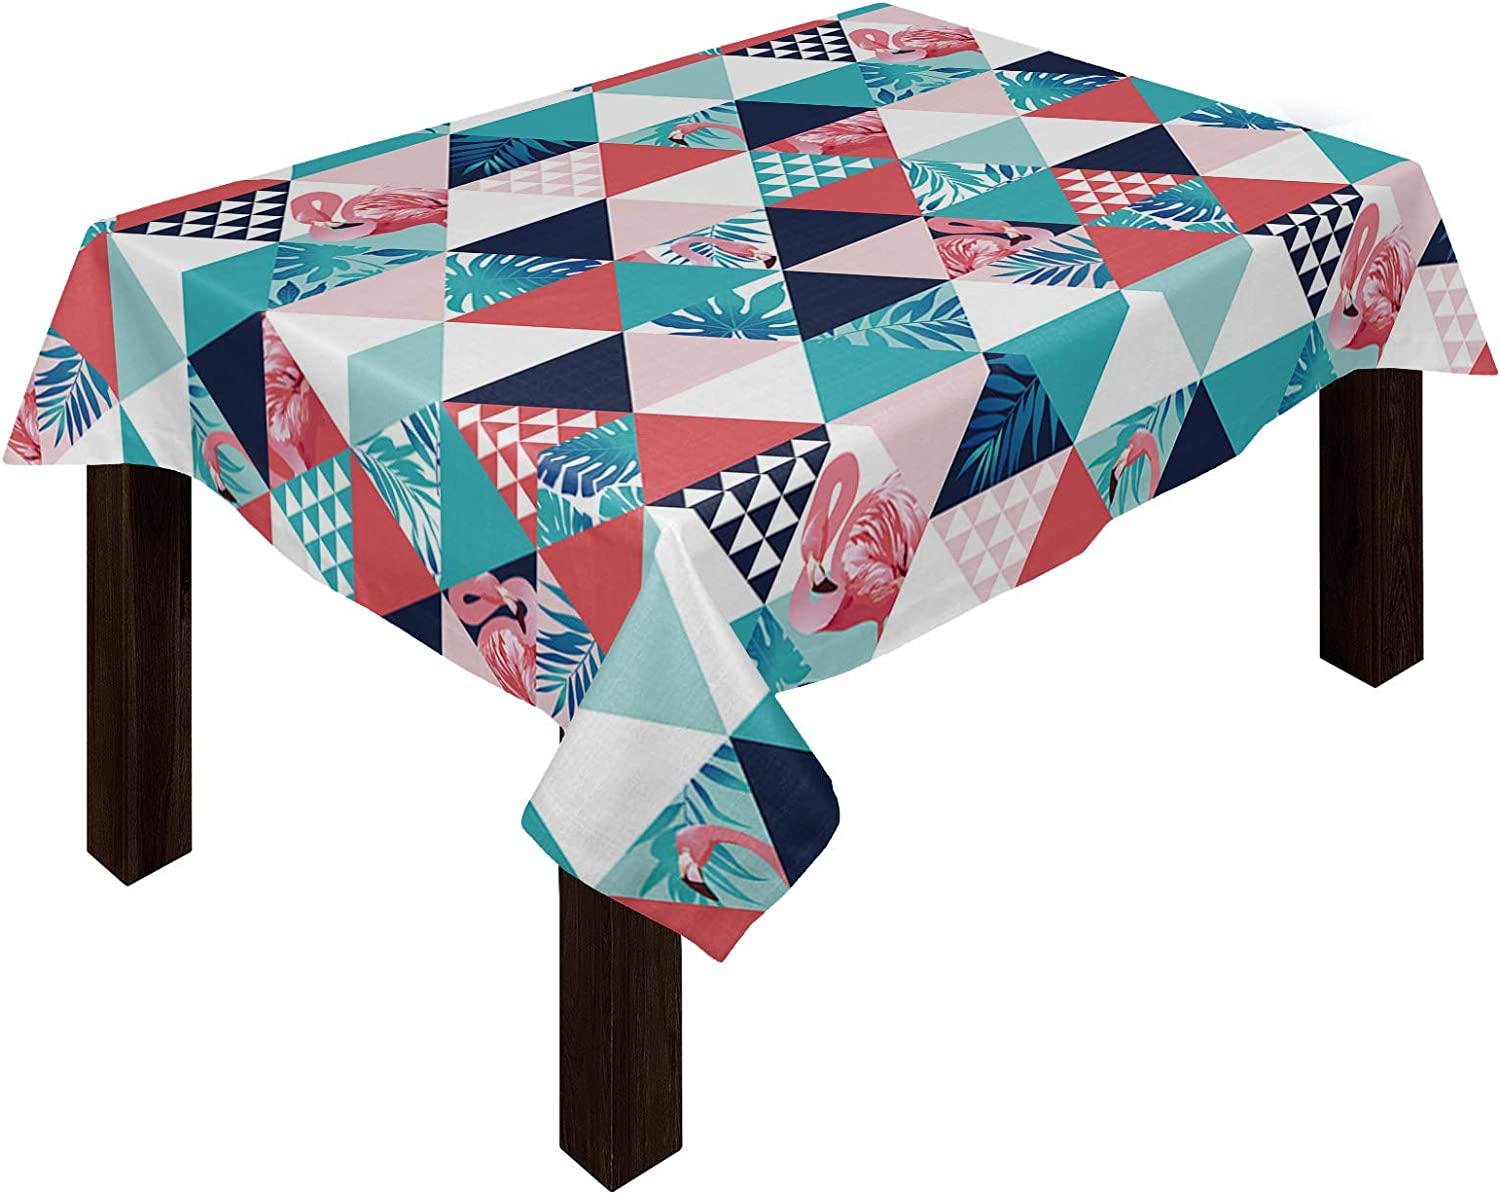 COLORSUM Stain Proof Table Cloth Flamingoes and on Plants Summer Limited time cheap sale Finally resale start